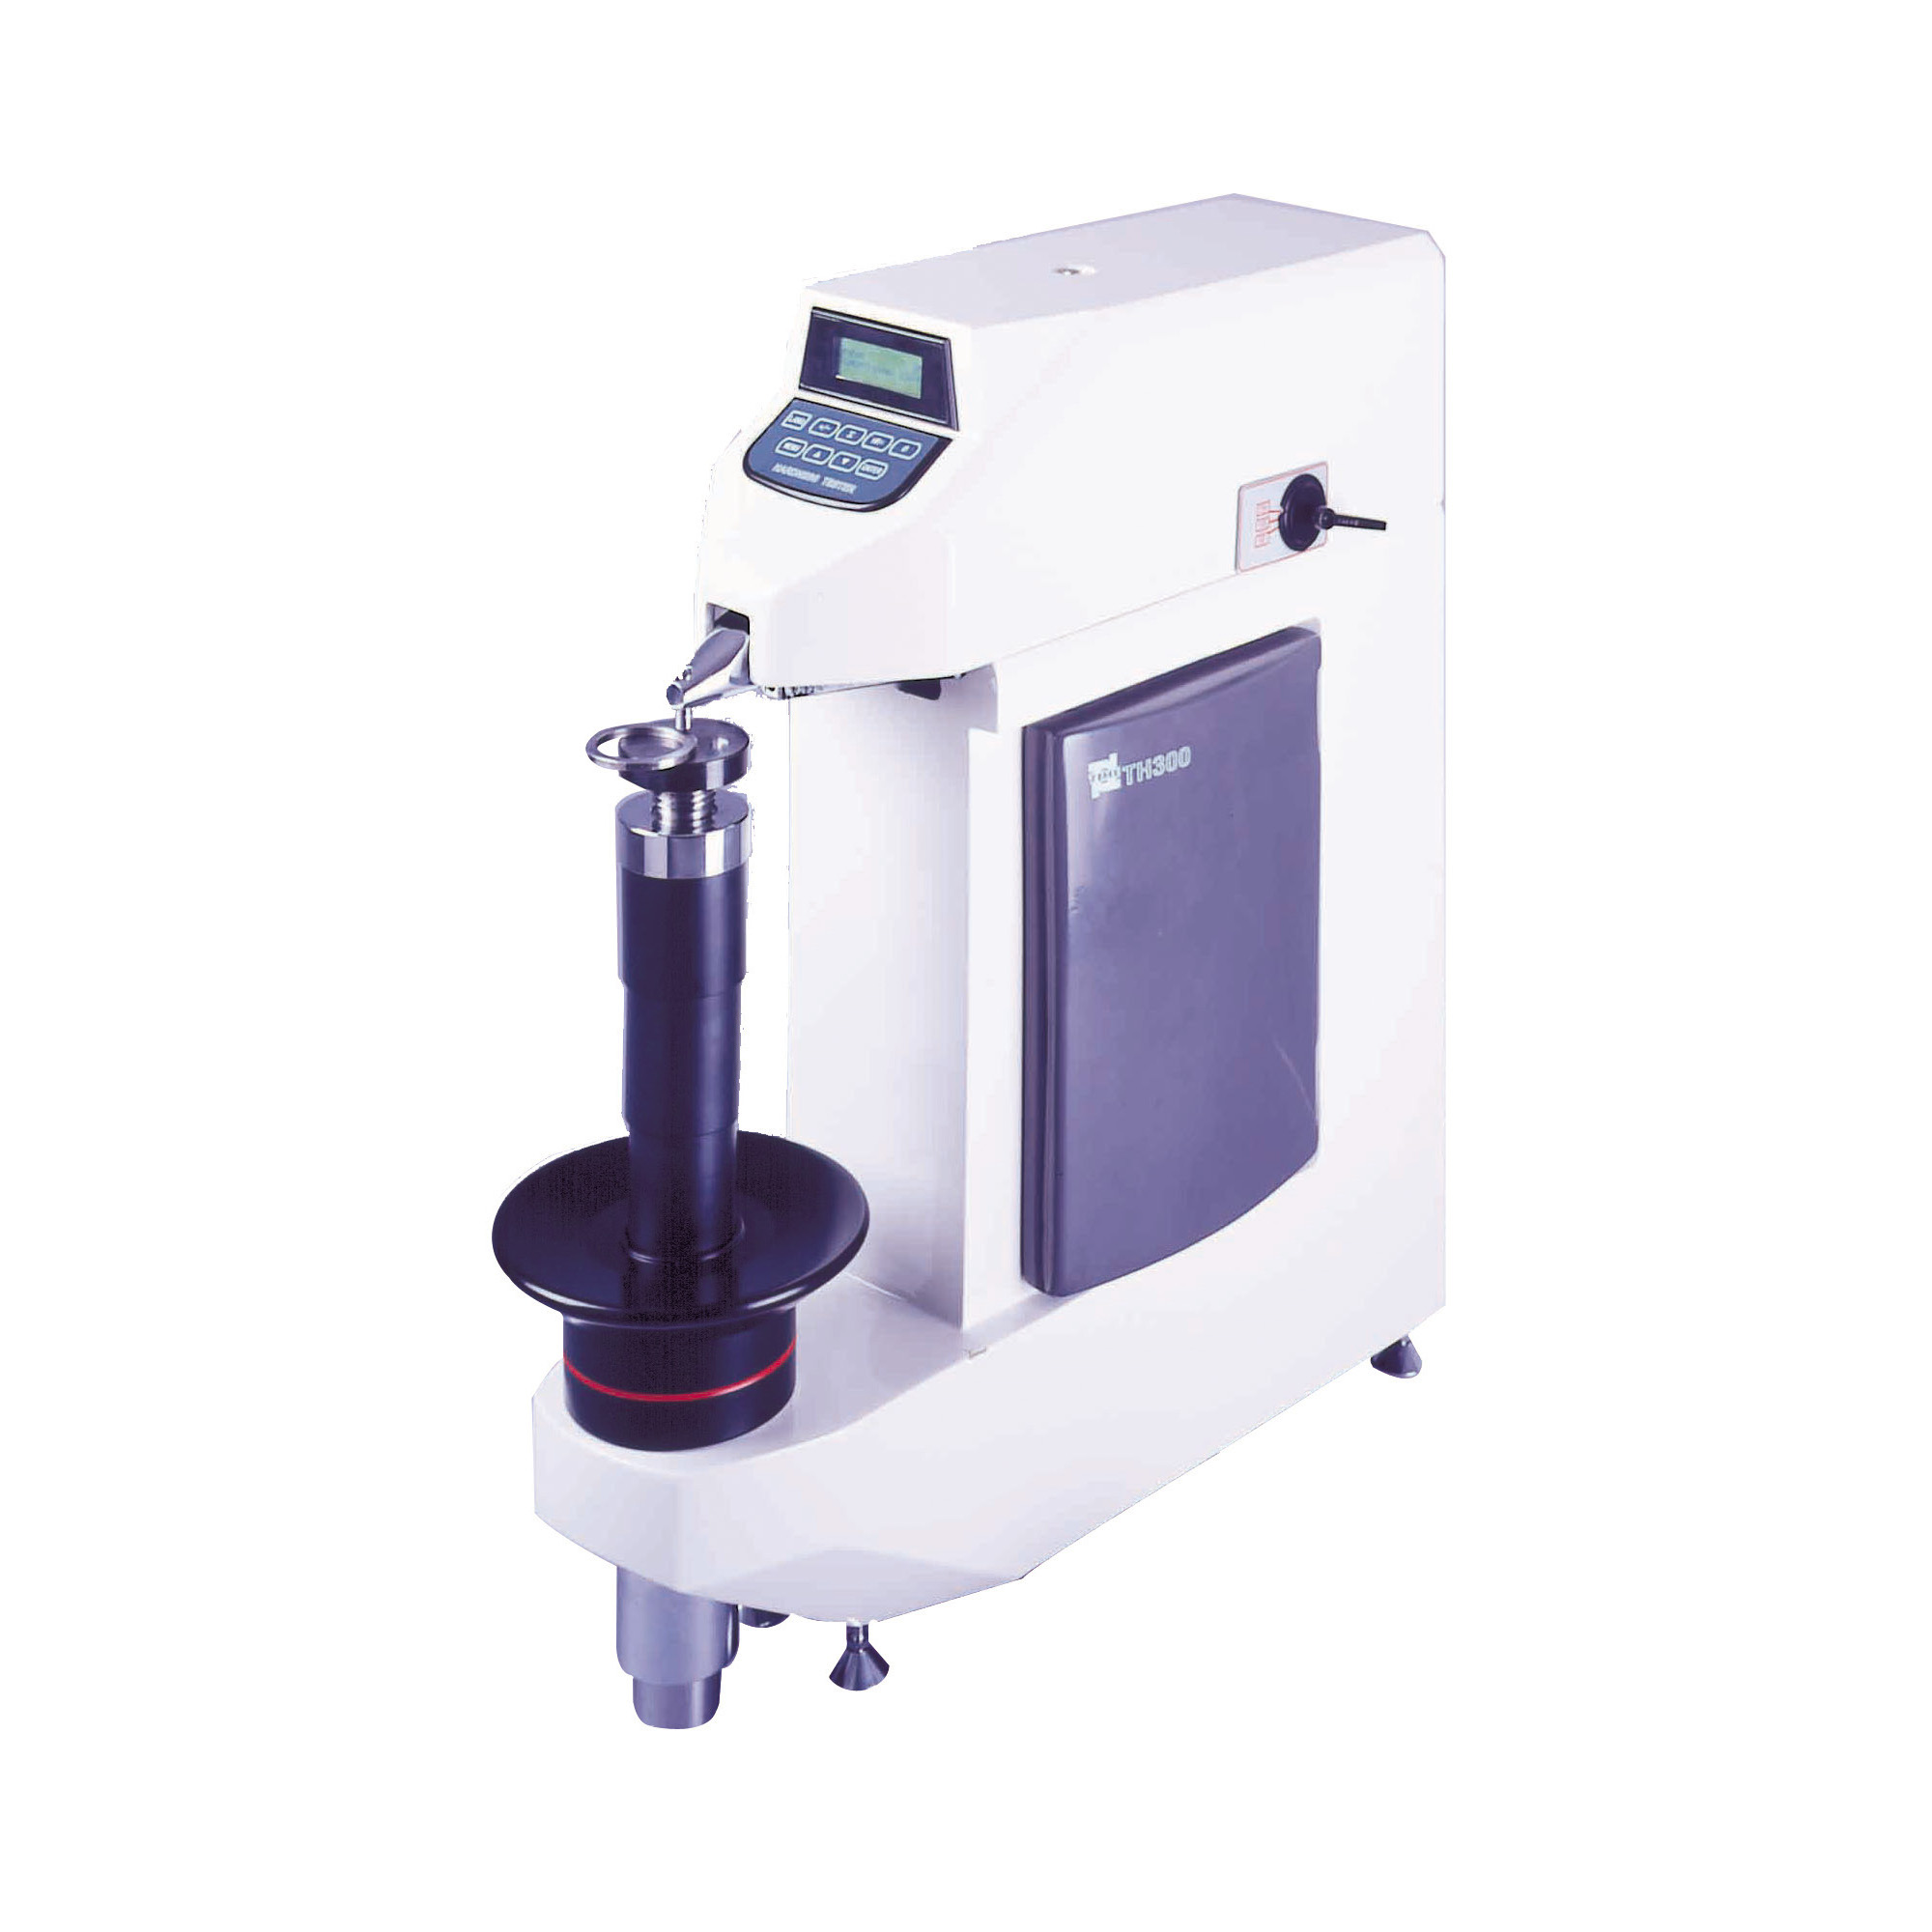 TIME®TH300 - Protrudent Nose Digital Std Rockwell